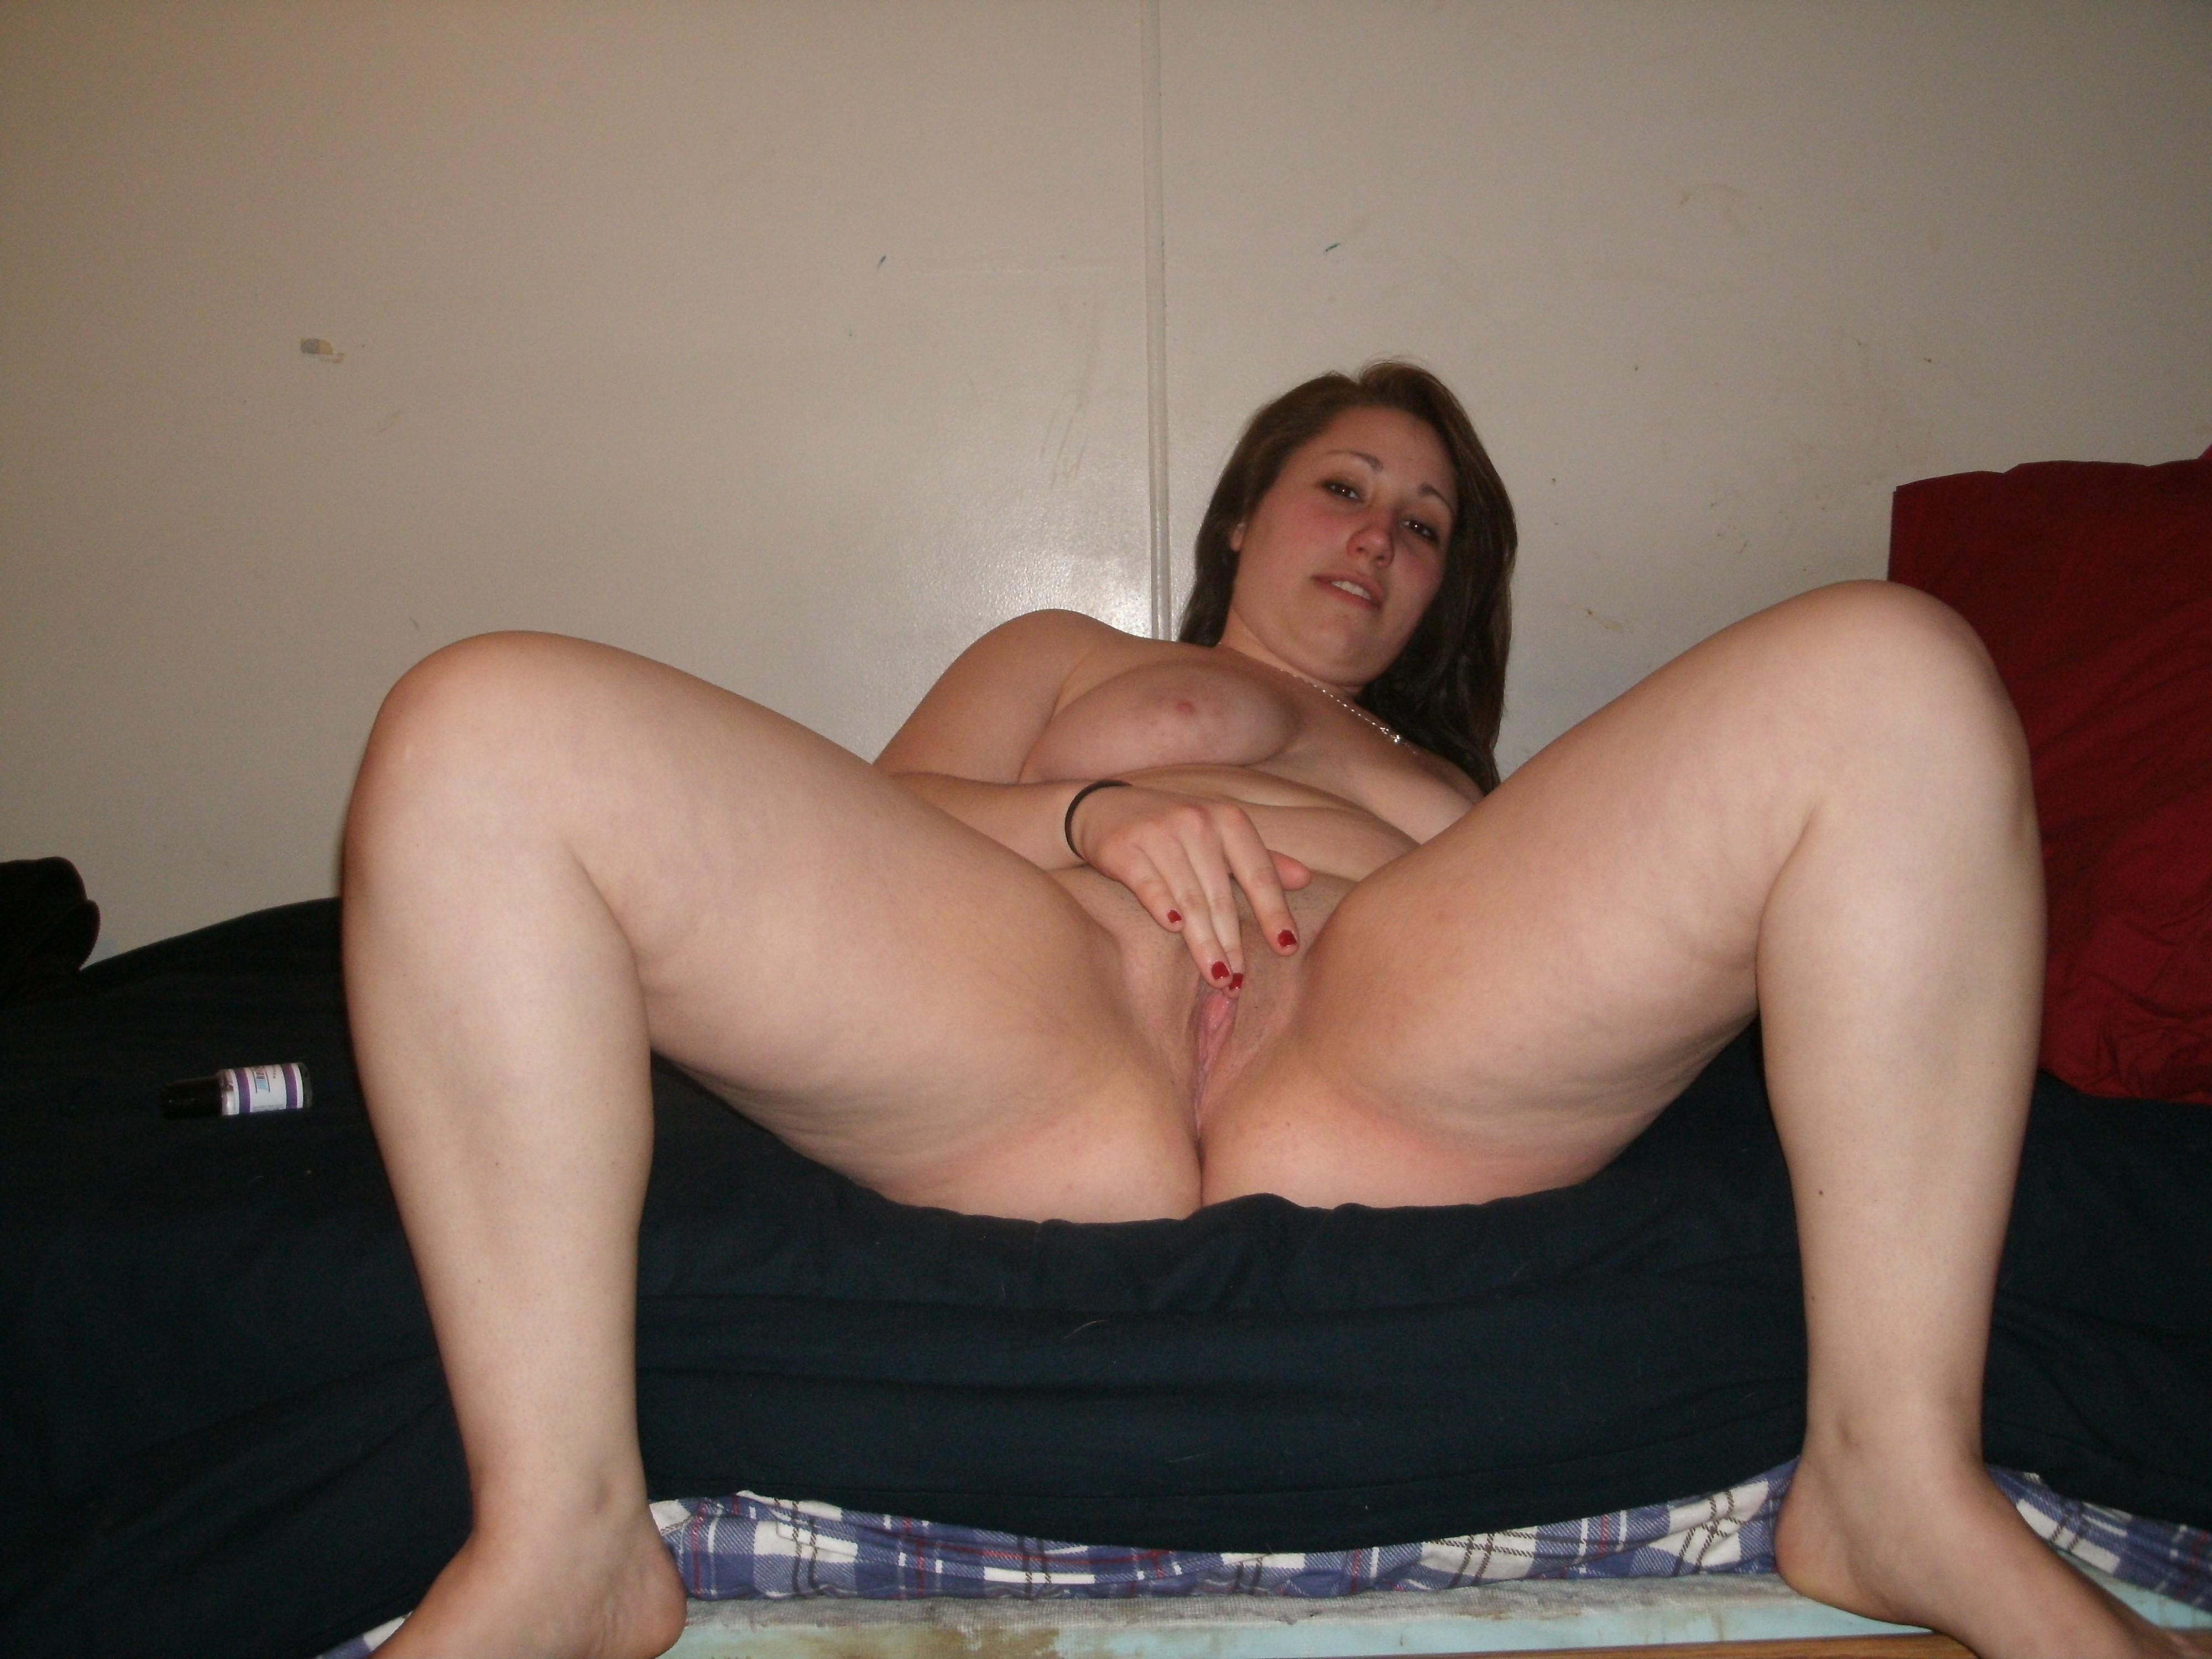 Free hot picture sex tit today